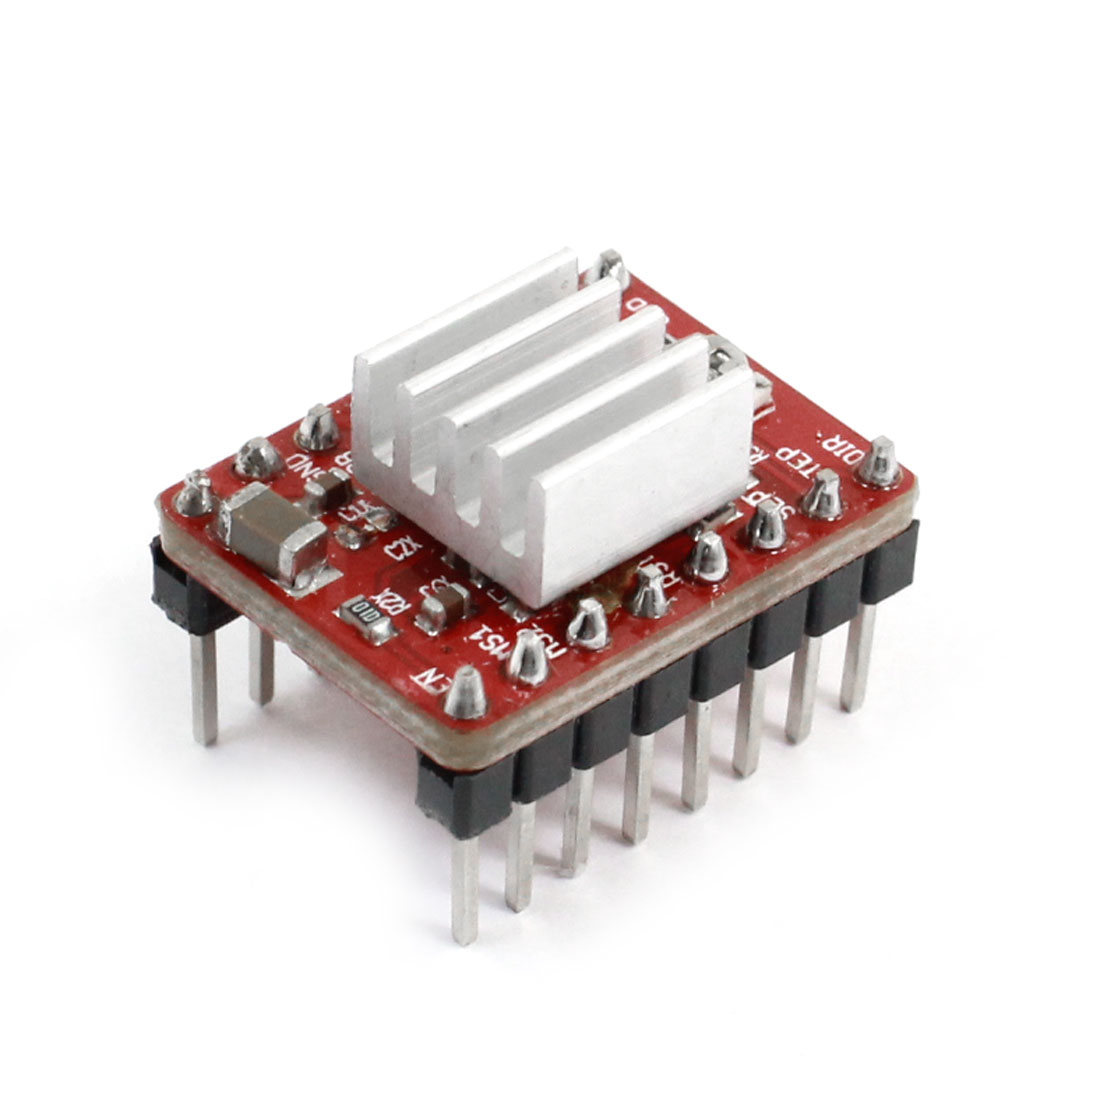 A4988 8 Pins Dual Row Stepper Motor Driver Module with Heatsink for 3D Printer